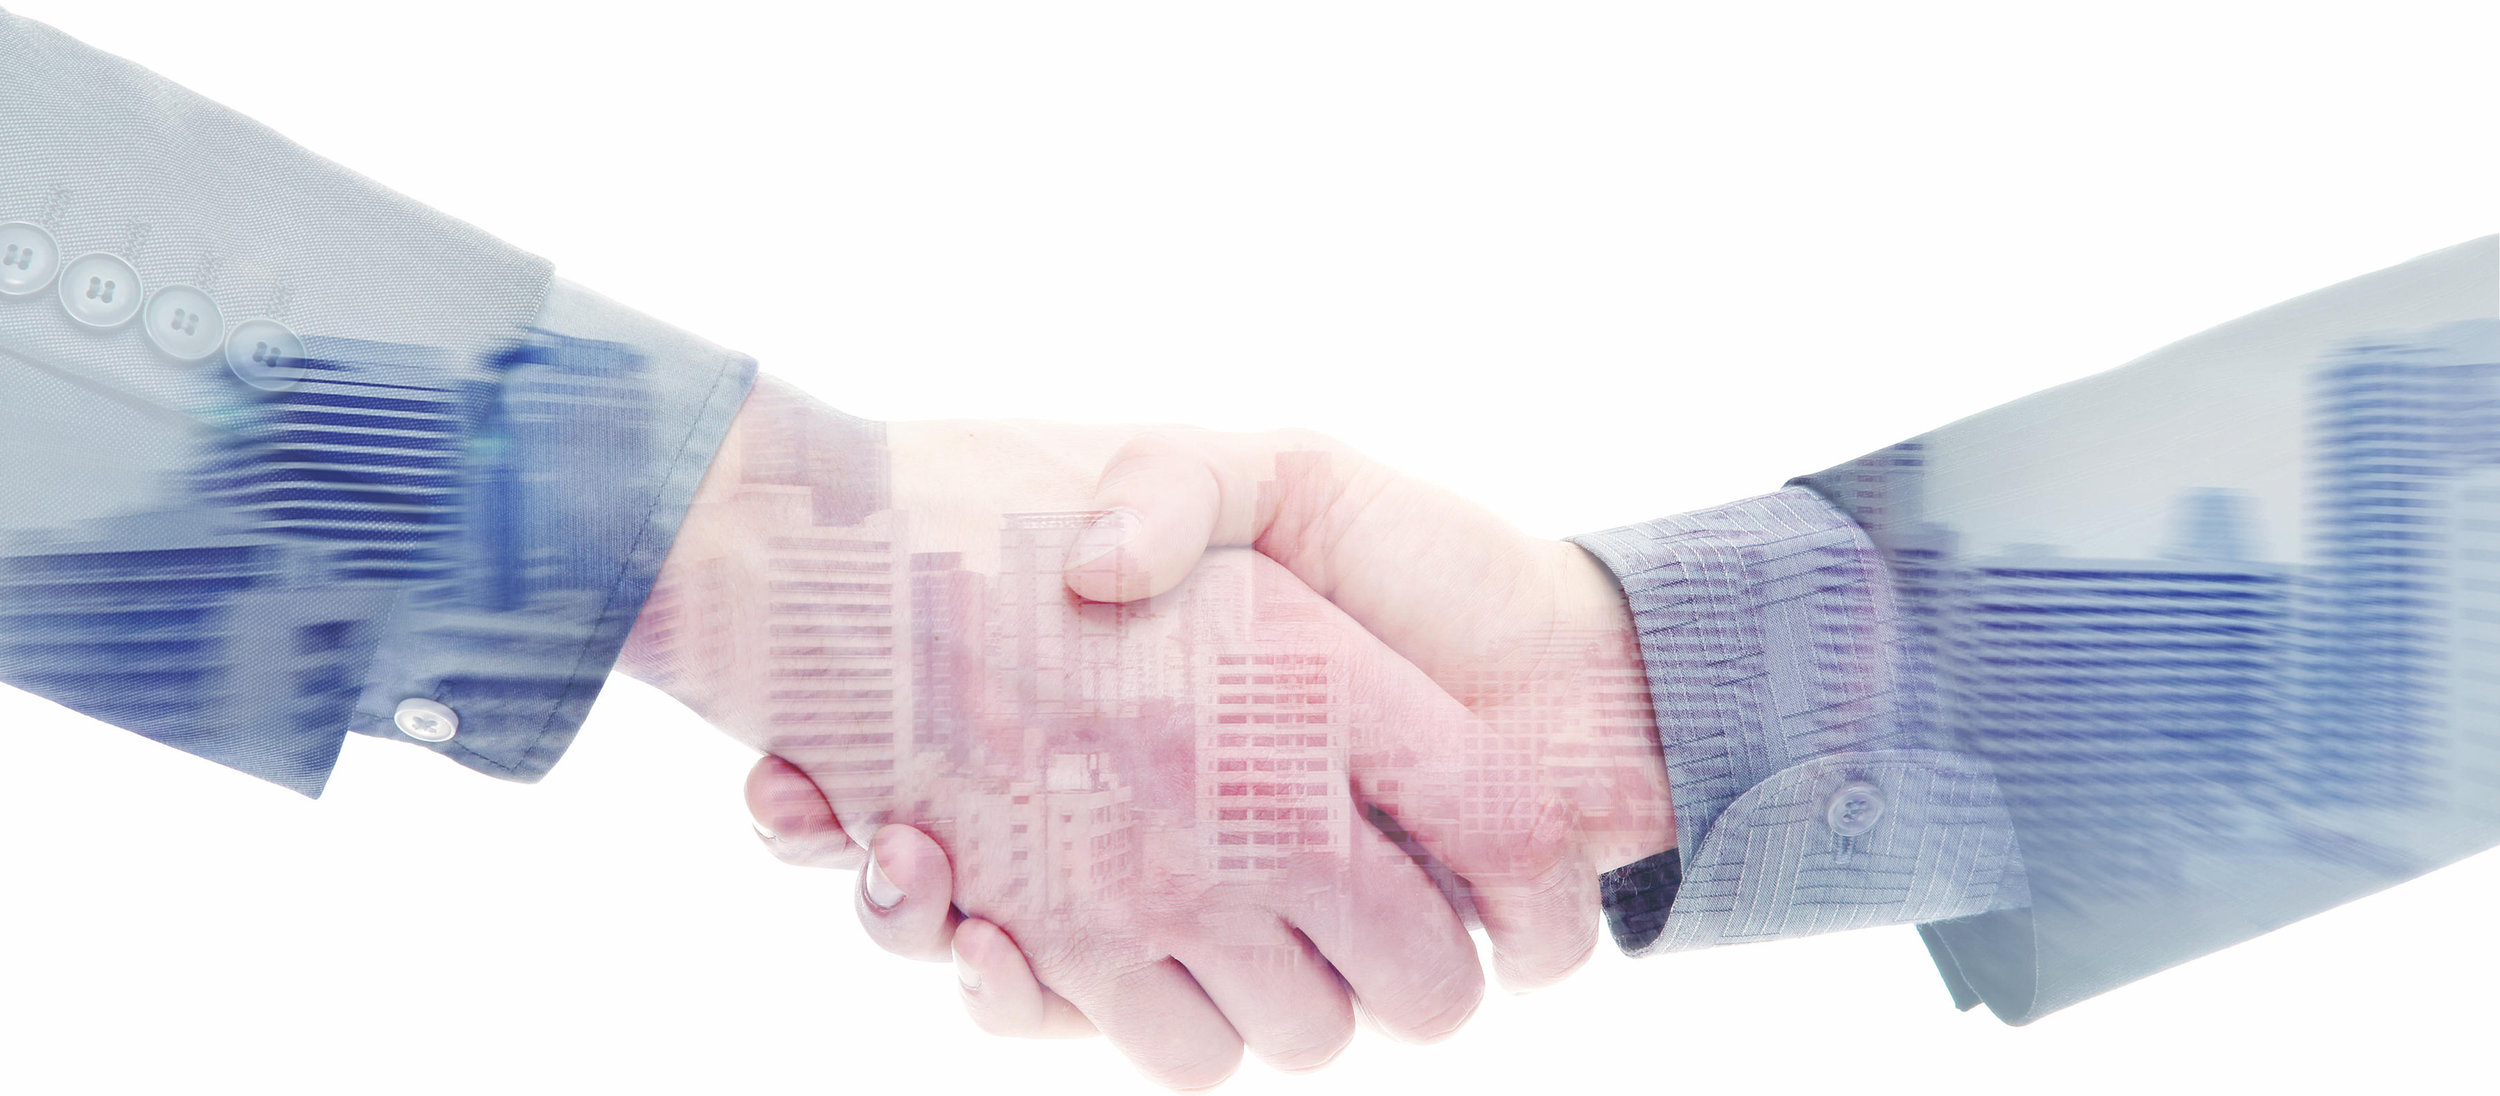 Starting up and spinning out: the changing nature of partnerships between pharma and academia